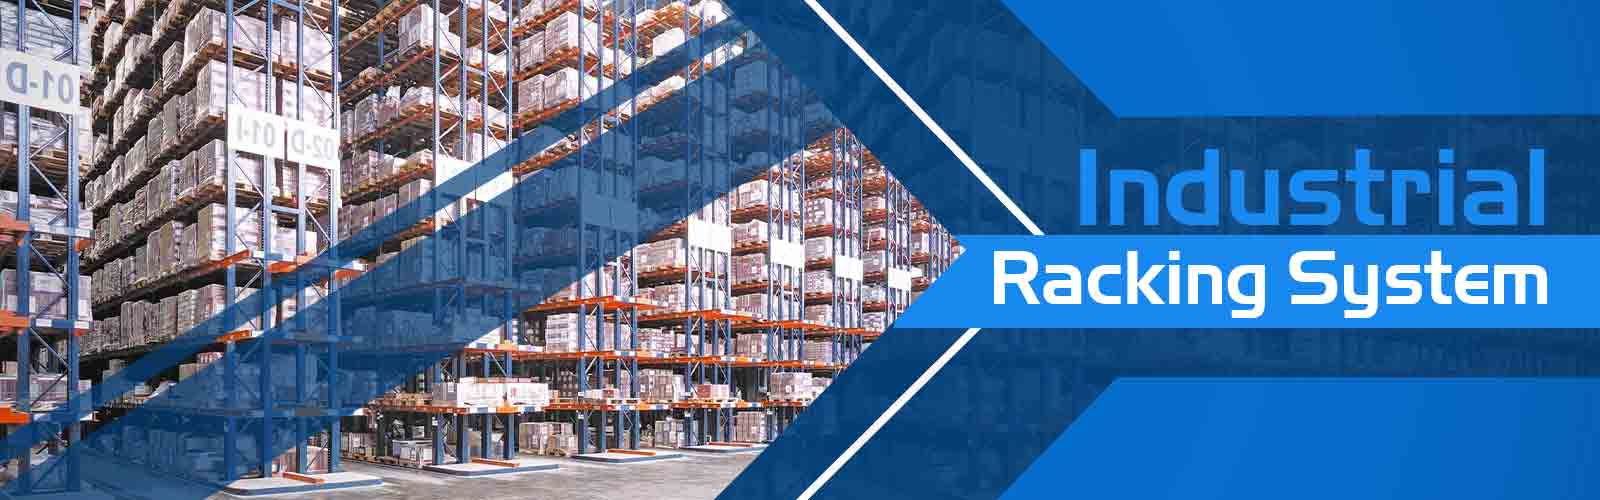 Industrial Racking System Manufacturers In Khushkhera